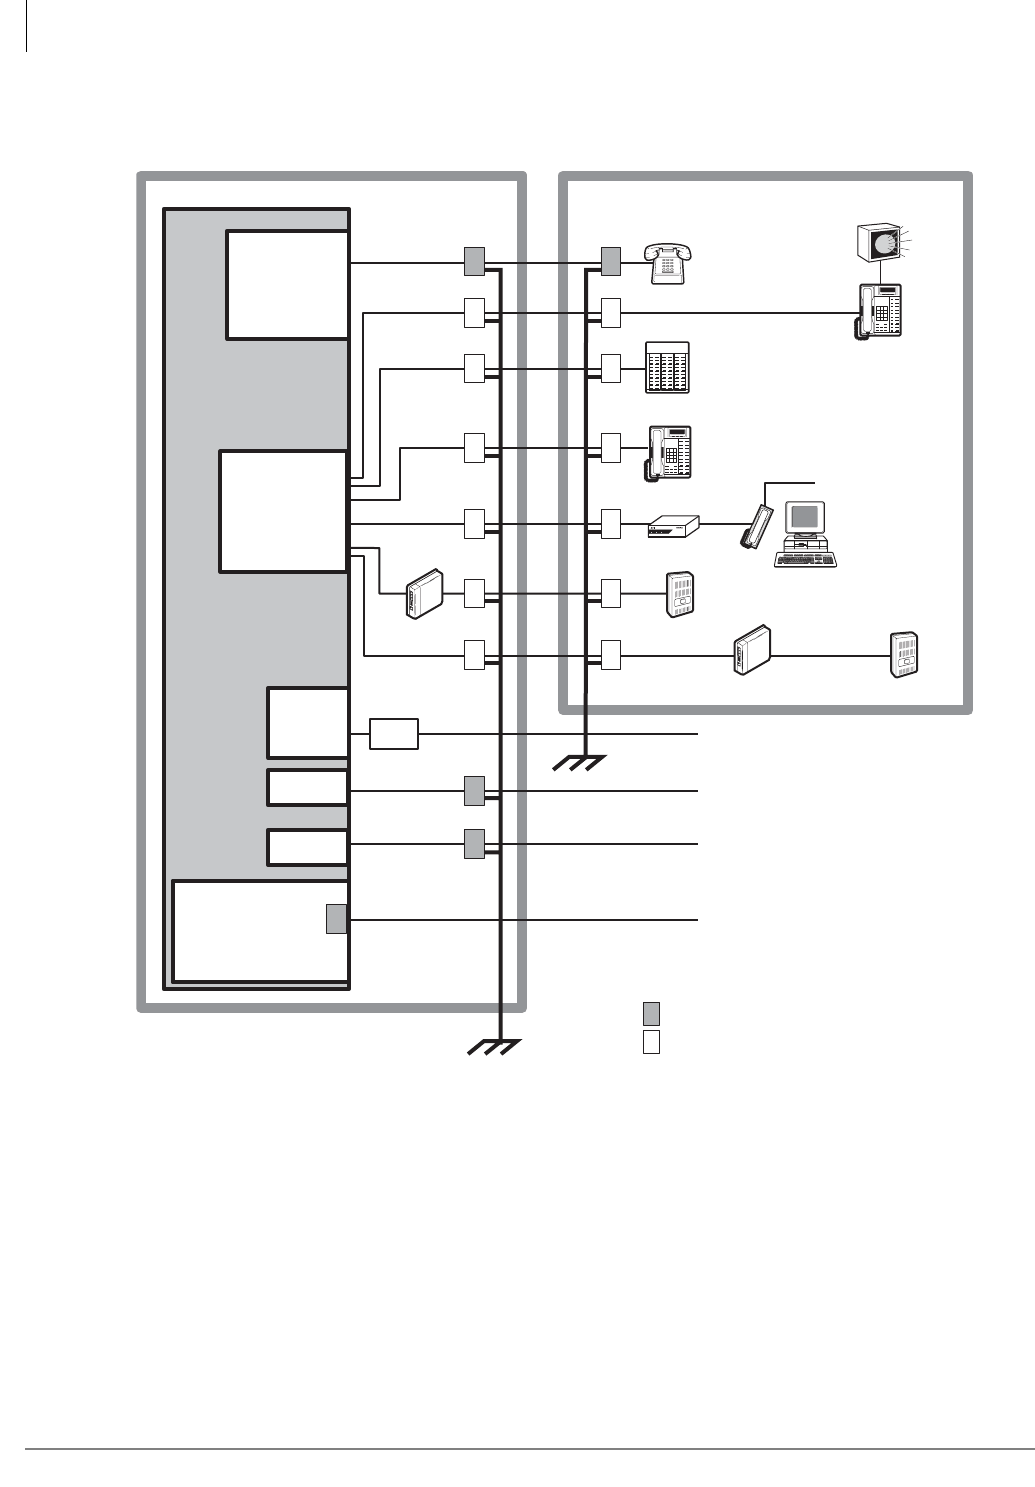 Page 376 of Toshiba Telephone CTX28 User Guide